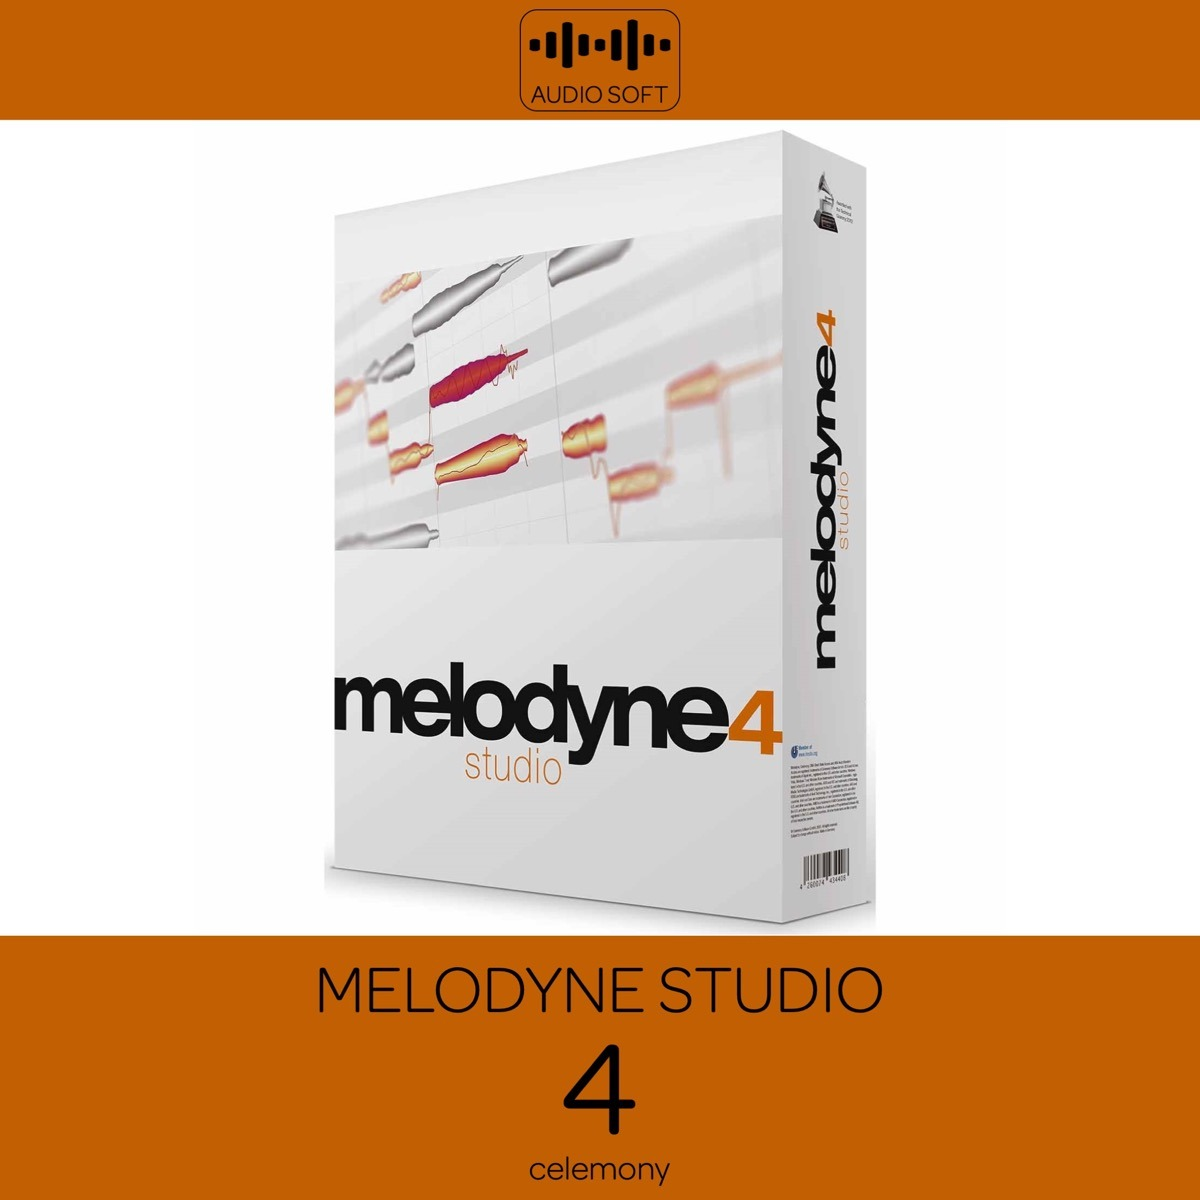 melodyne vst plugin